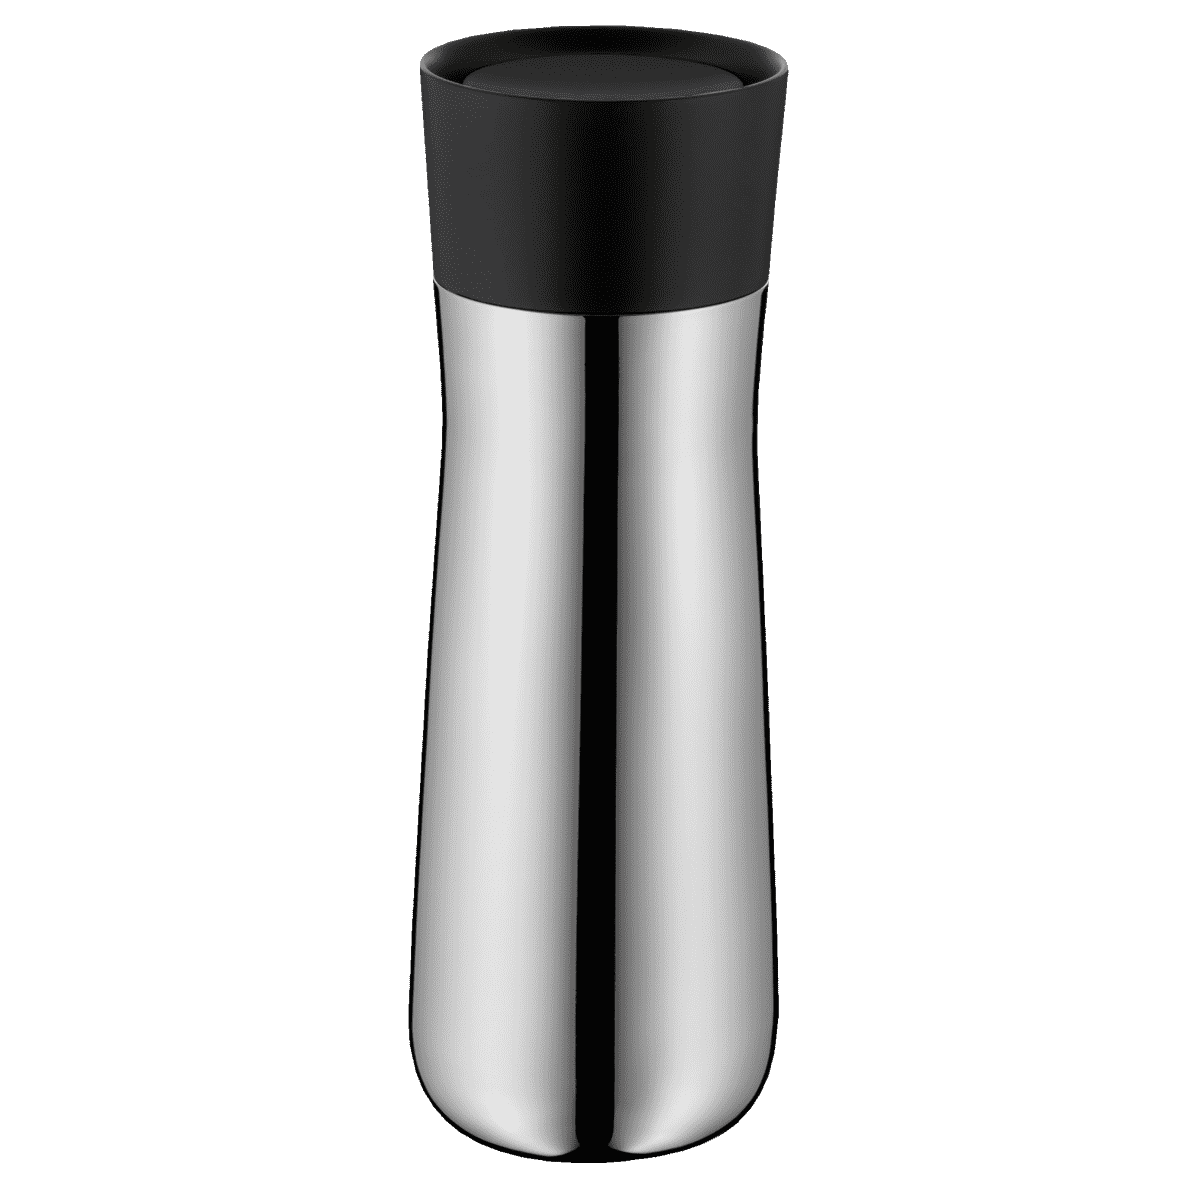 WMF  06.9072.6040 Tea & Coffee Thermobecher in Silber | 04000530695895